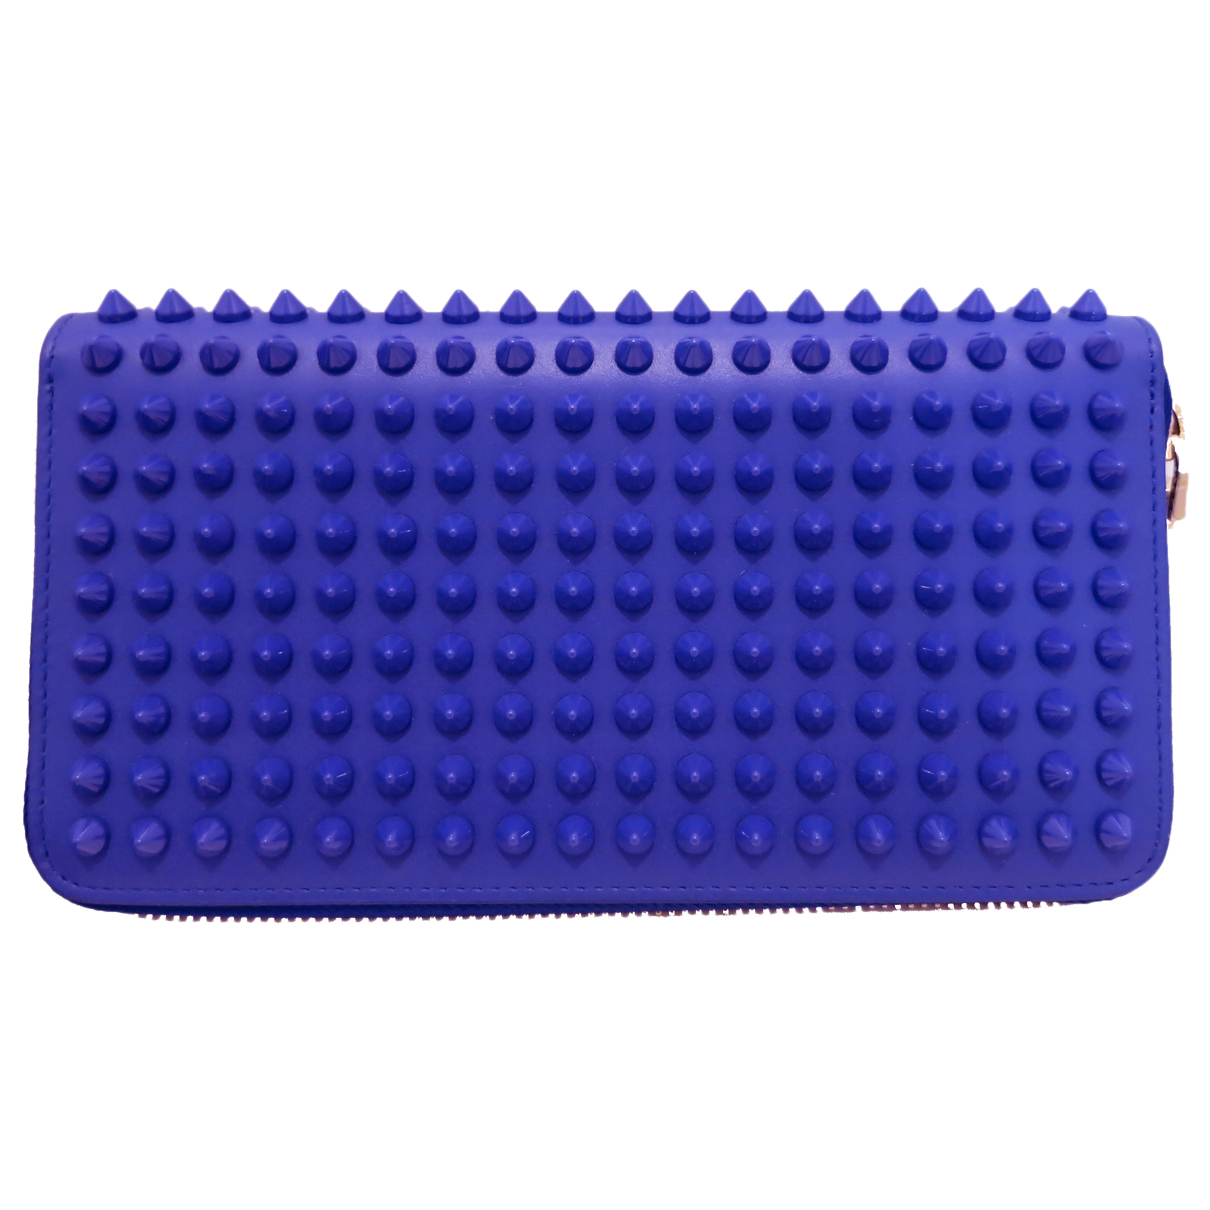 Christian Louboutin Panettone Blue Leather wallet for Women N